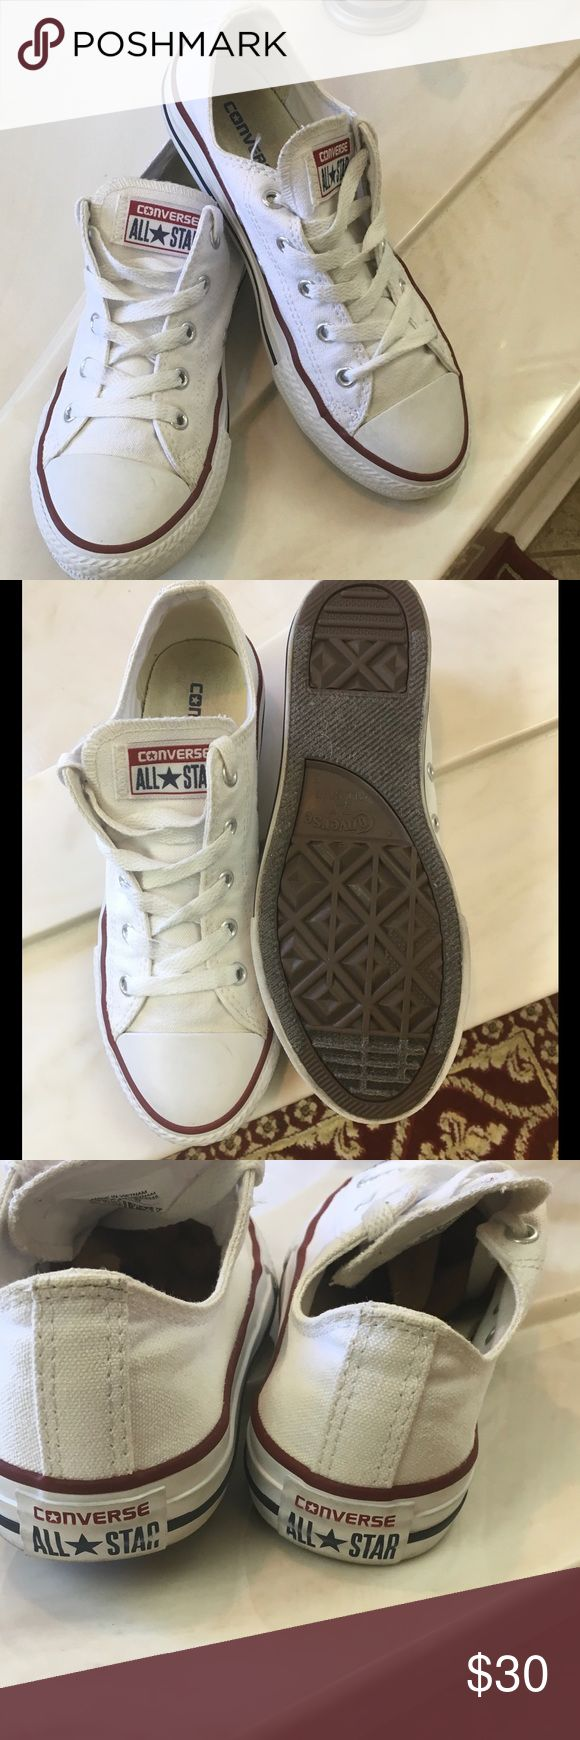 Girls White Converse sneaker SZ 3 In excellent condition no stains no rips Converse Shoes Sneakers